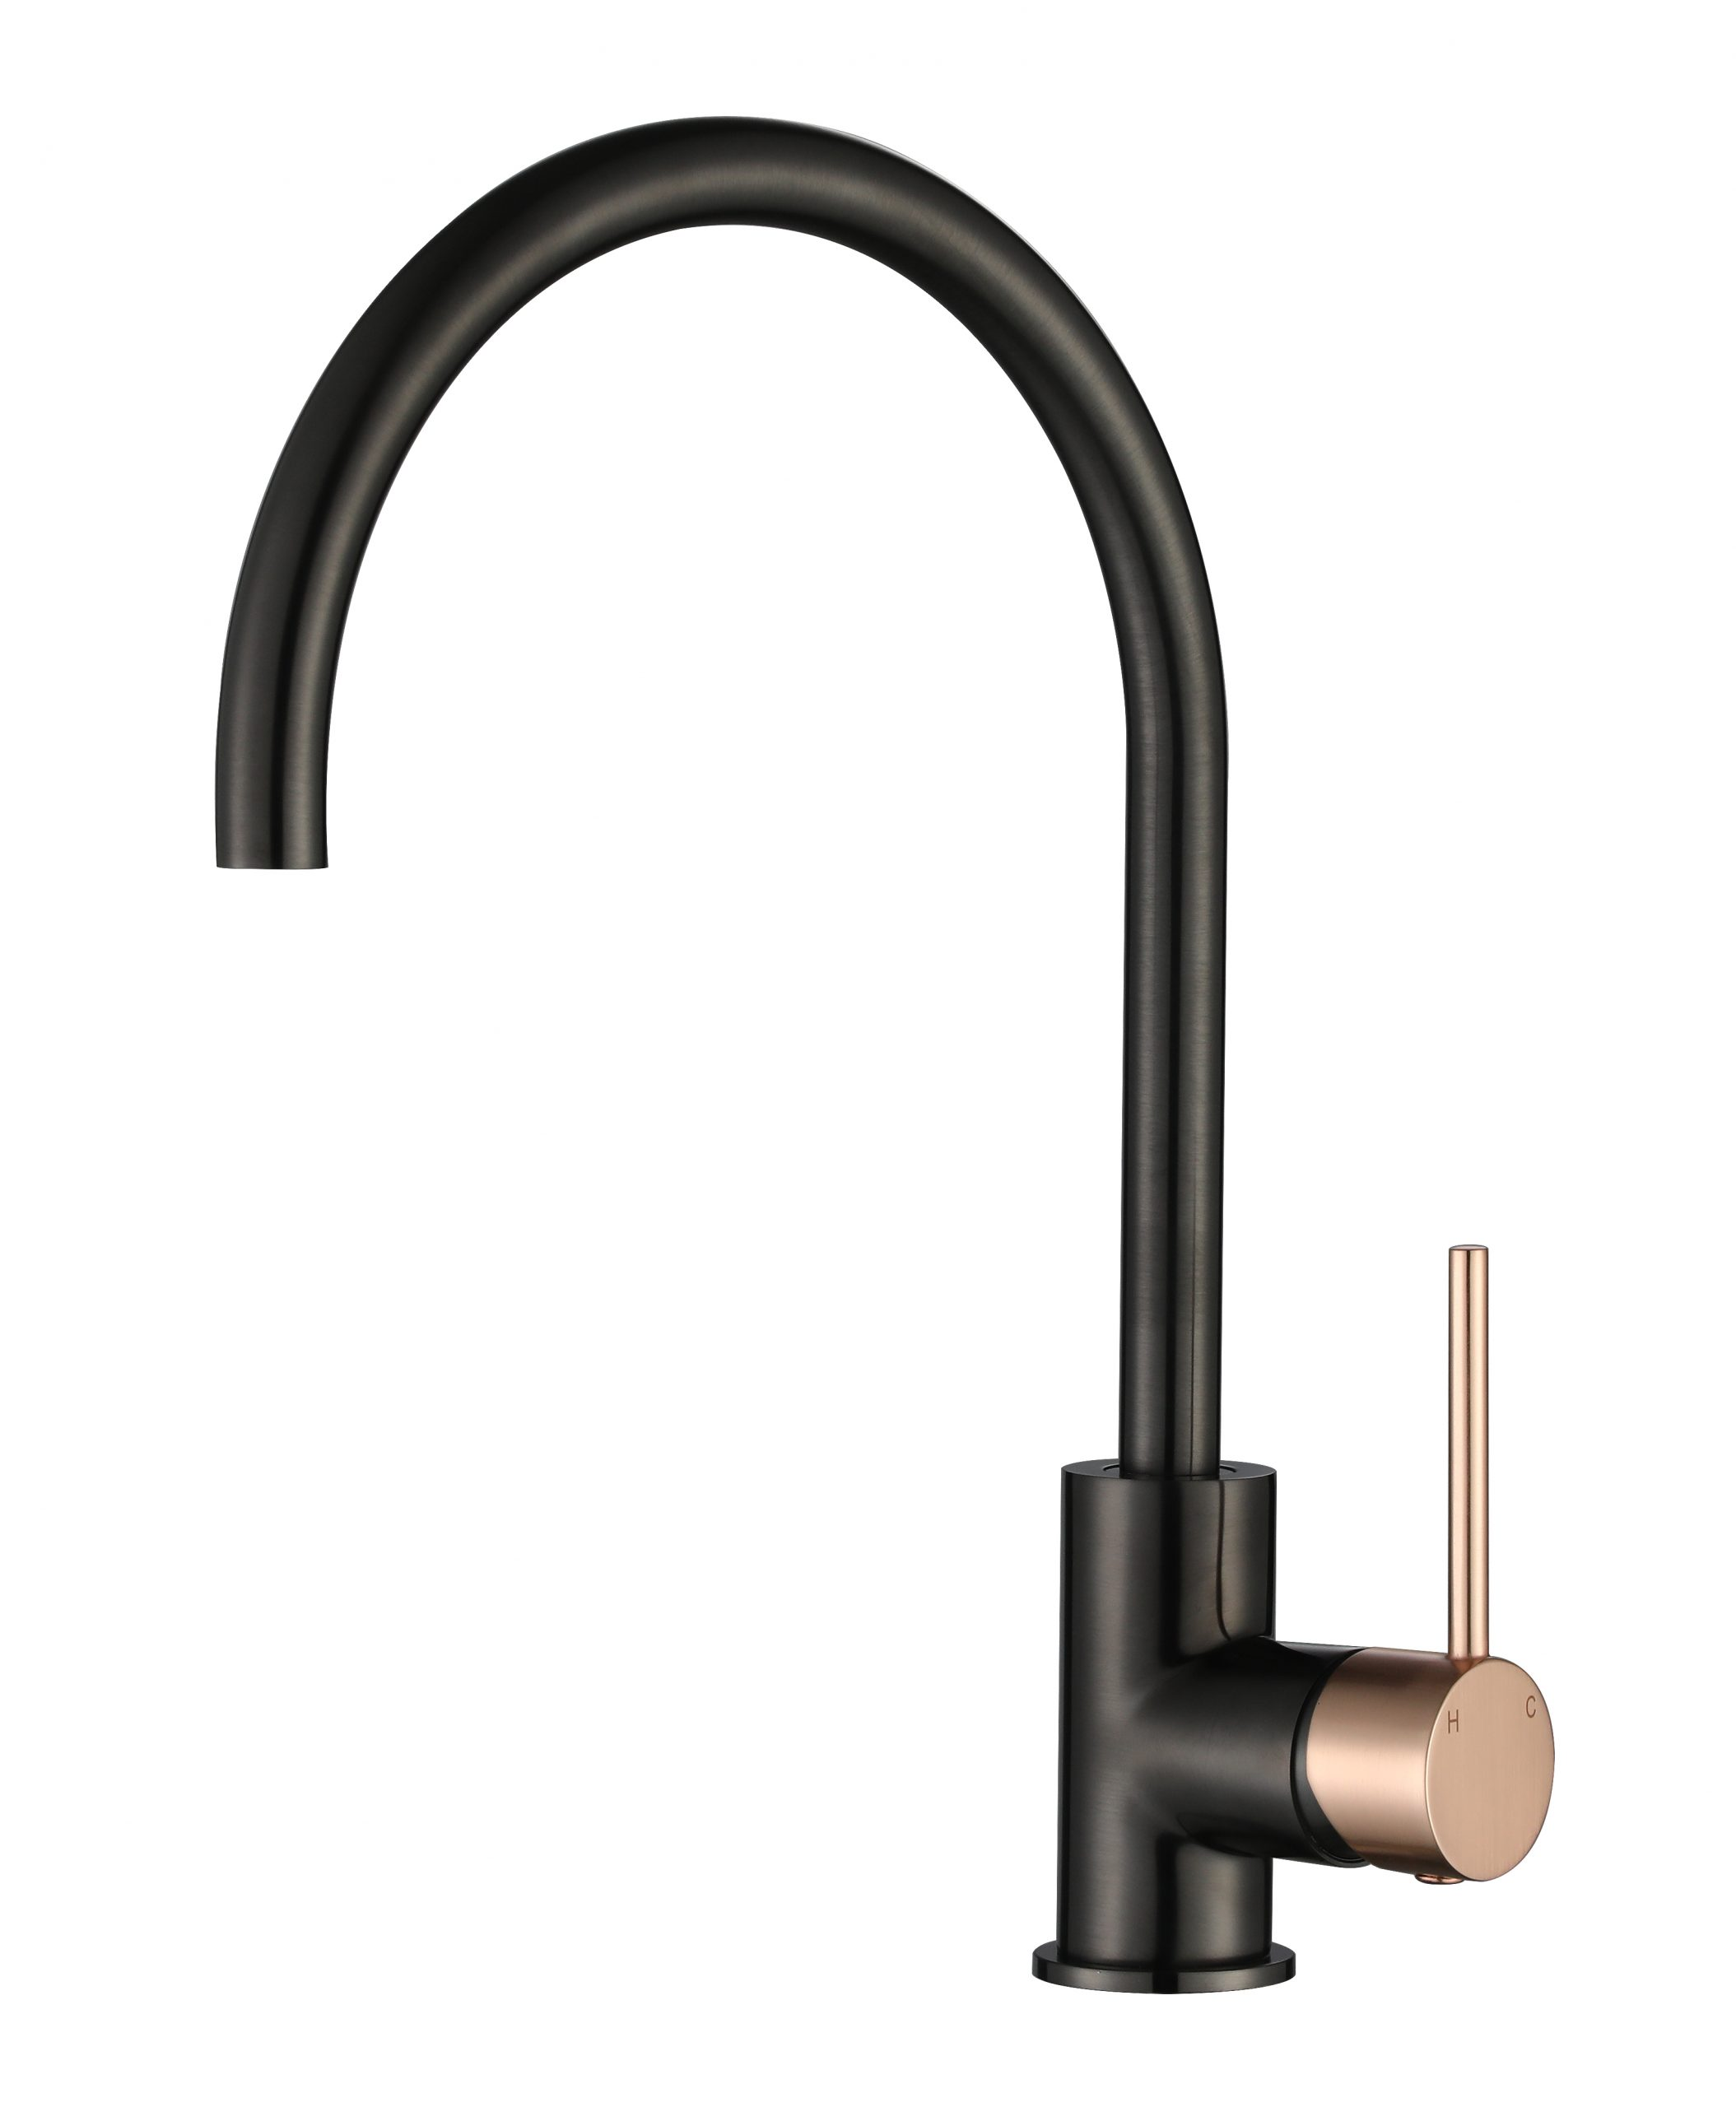 Star Mini Kitchen Mixer-Flemish Copper & PVD Gun Metal